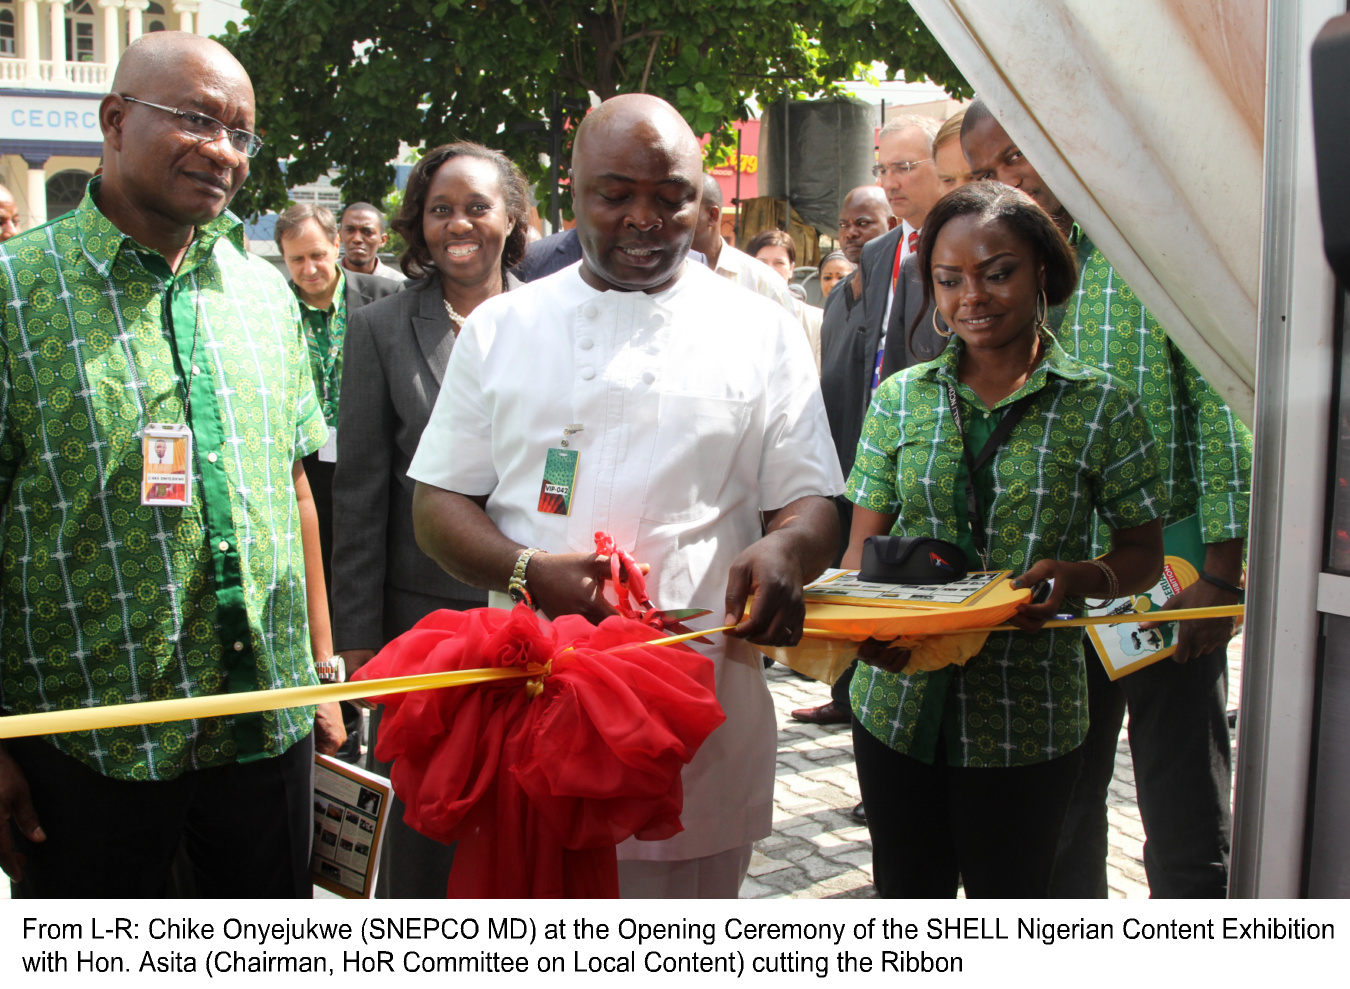 Opening Ceremony of the SHELL Nigerian Content Exhibition